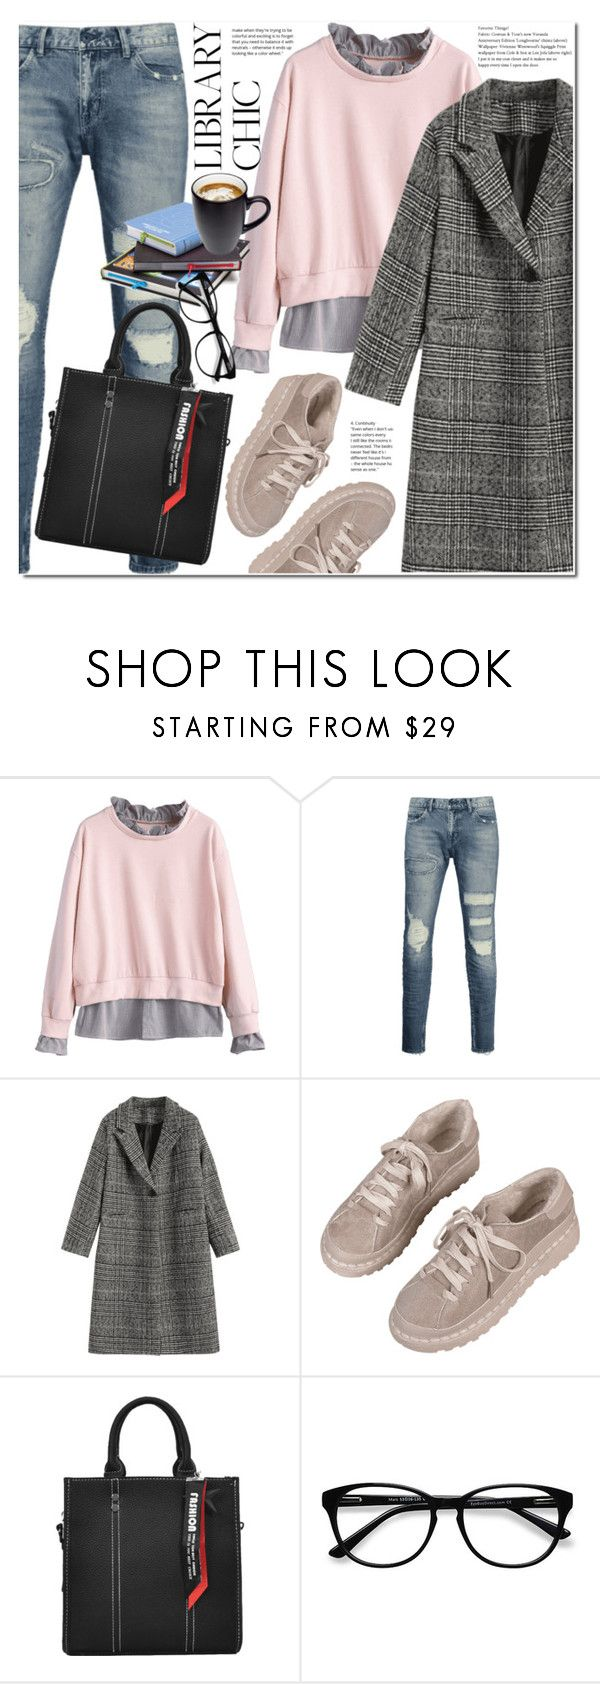 """""""Work Hard, Play Hard: Finals Season"""" by duma-duma ❤ liked on Polyvore featuring EyeBuyDirect.com and finals"""